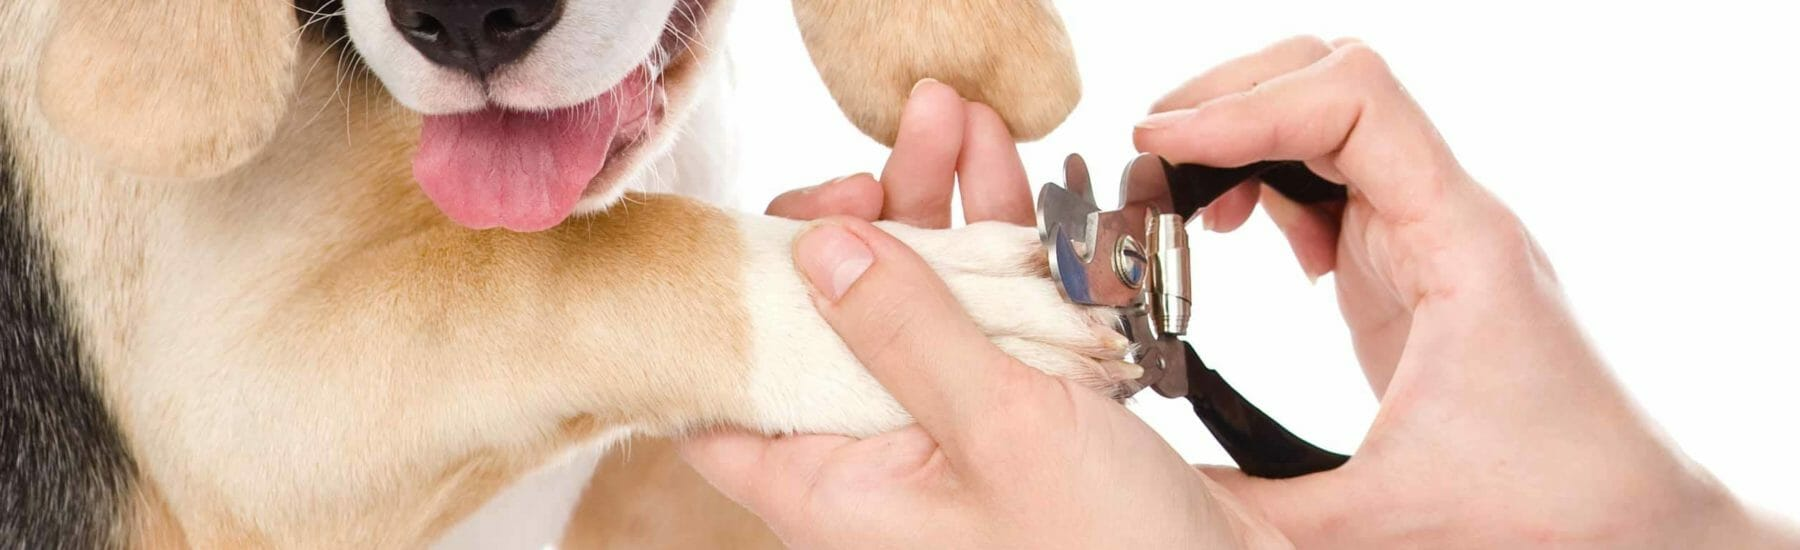 Brown dog with paw in vet's hand getting nails trimmed